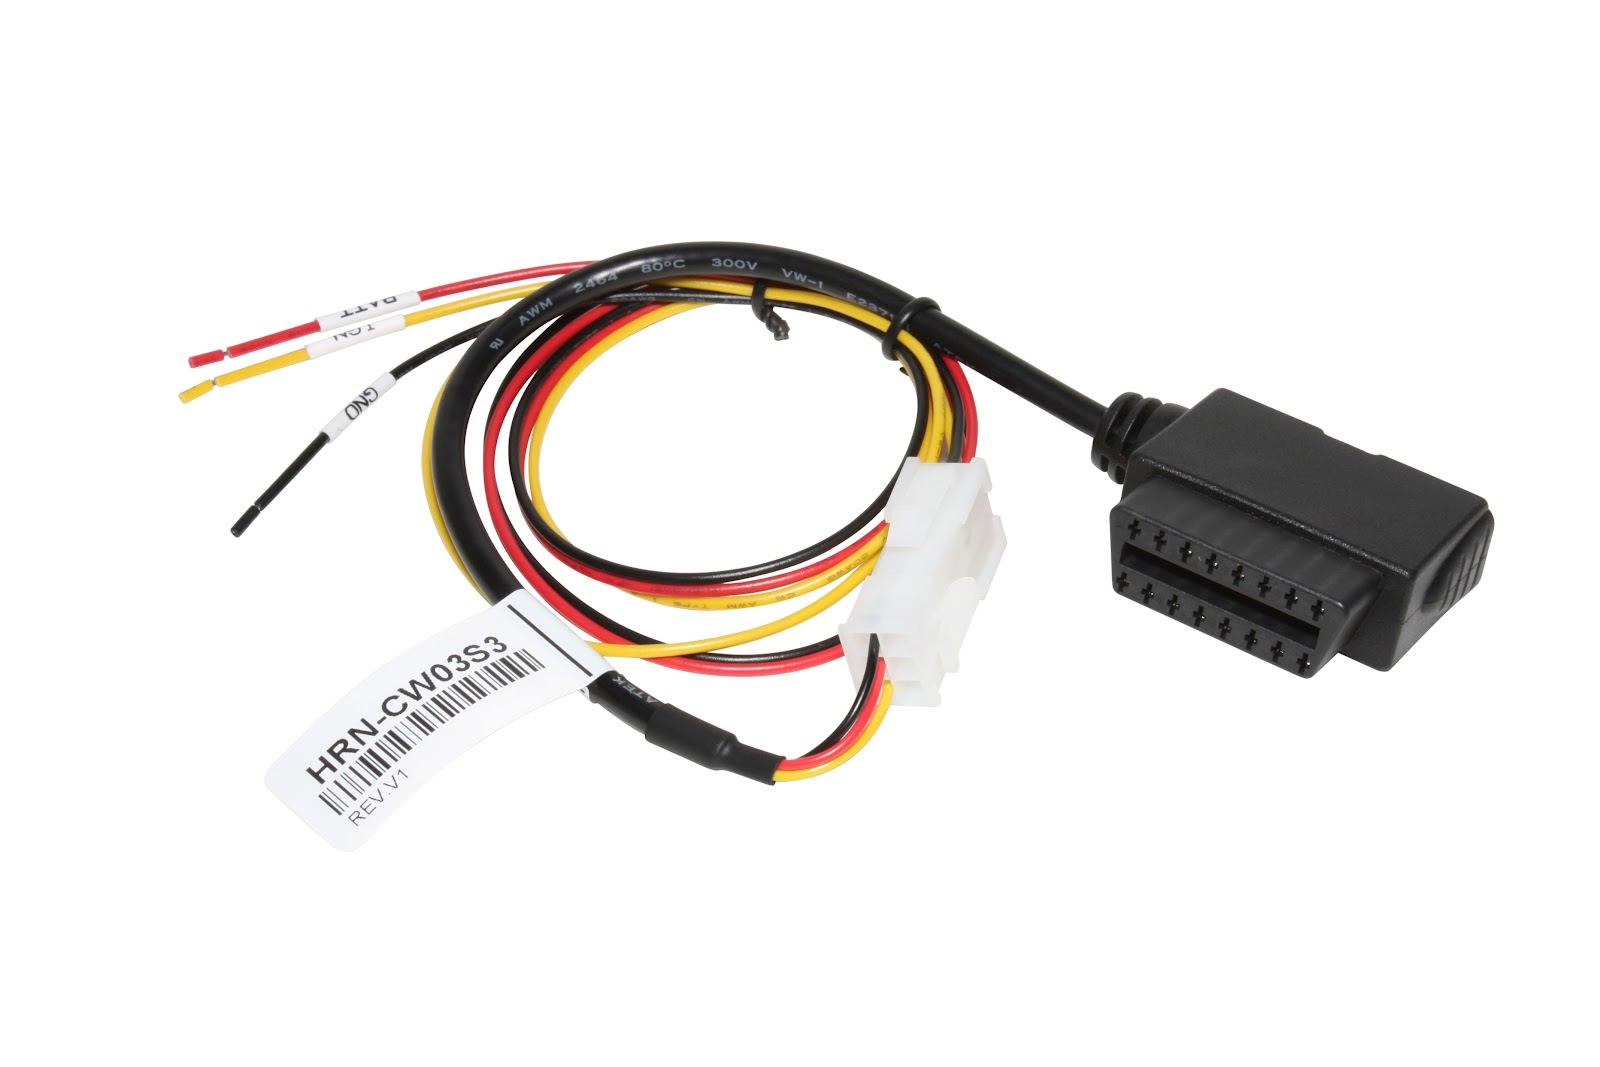 Harness Identification And Application Identificaton Wiring Kits Hrn Cw03s3 24 Jul 14